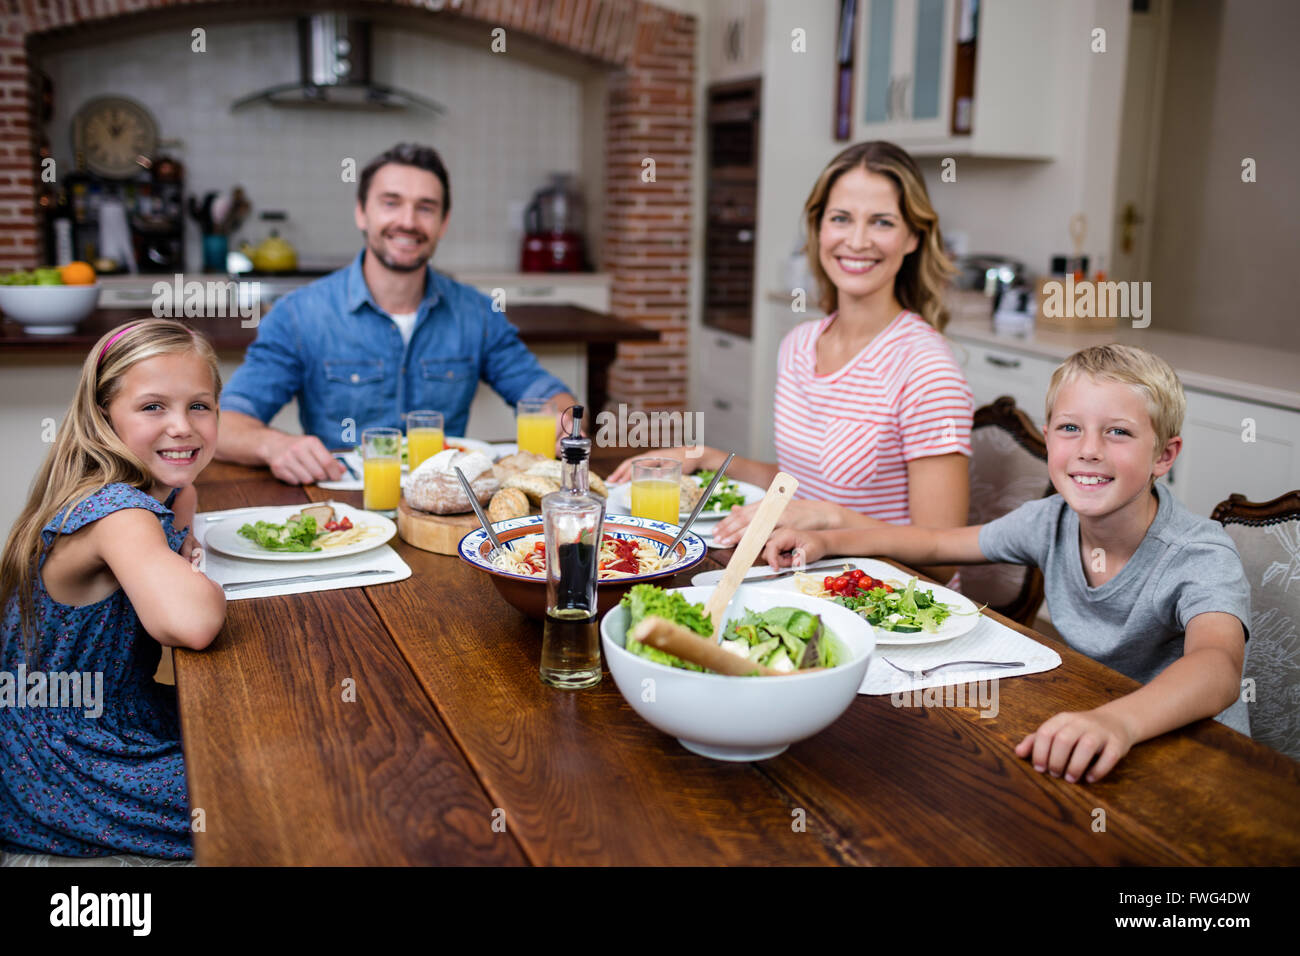 home, house, household, homey, apartment, domicile, kitchen, dinning table, wooden spoon, bowl, food - Stock Image